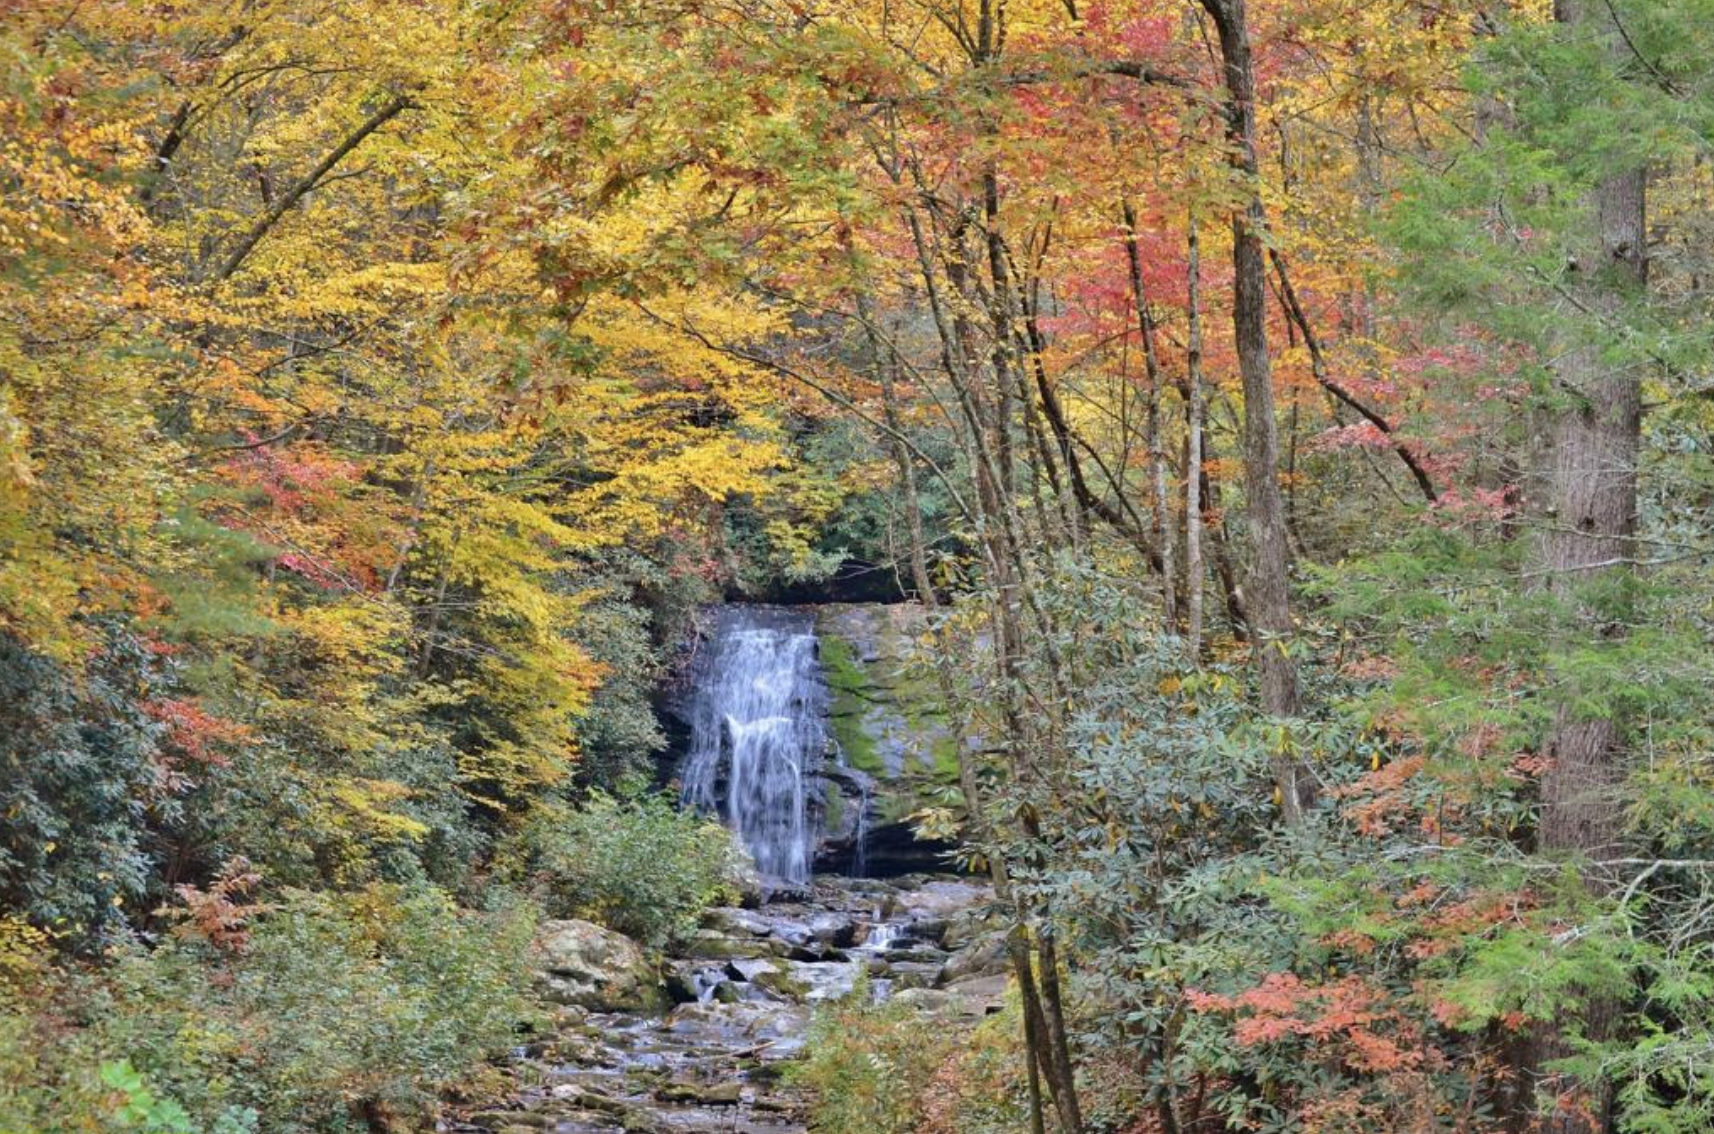 A Quick Detour Is All It Takes To Access One Of Tennessee's Most Picturesque Waterfalls